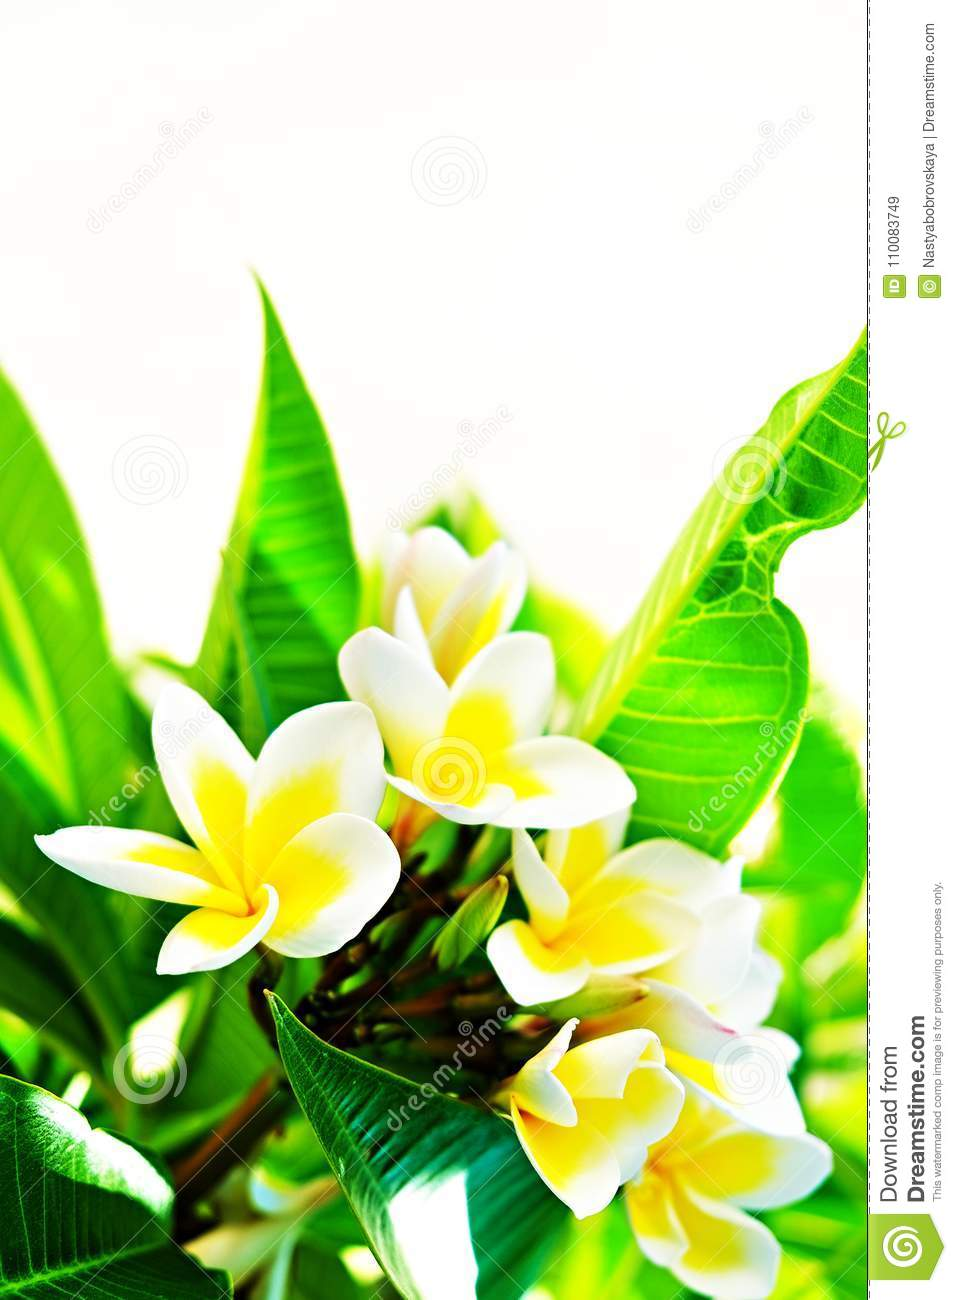 Exotic flowers from tropical contries you deserve a vocation download exotic flowers from tropical contries you deserve a vocation concept beautiful rare plants izmirmasajfo